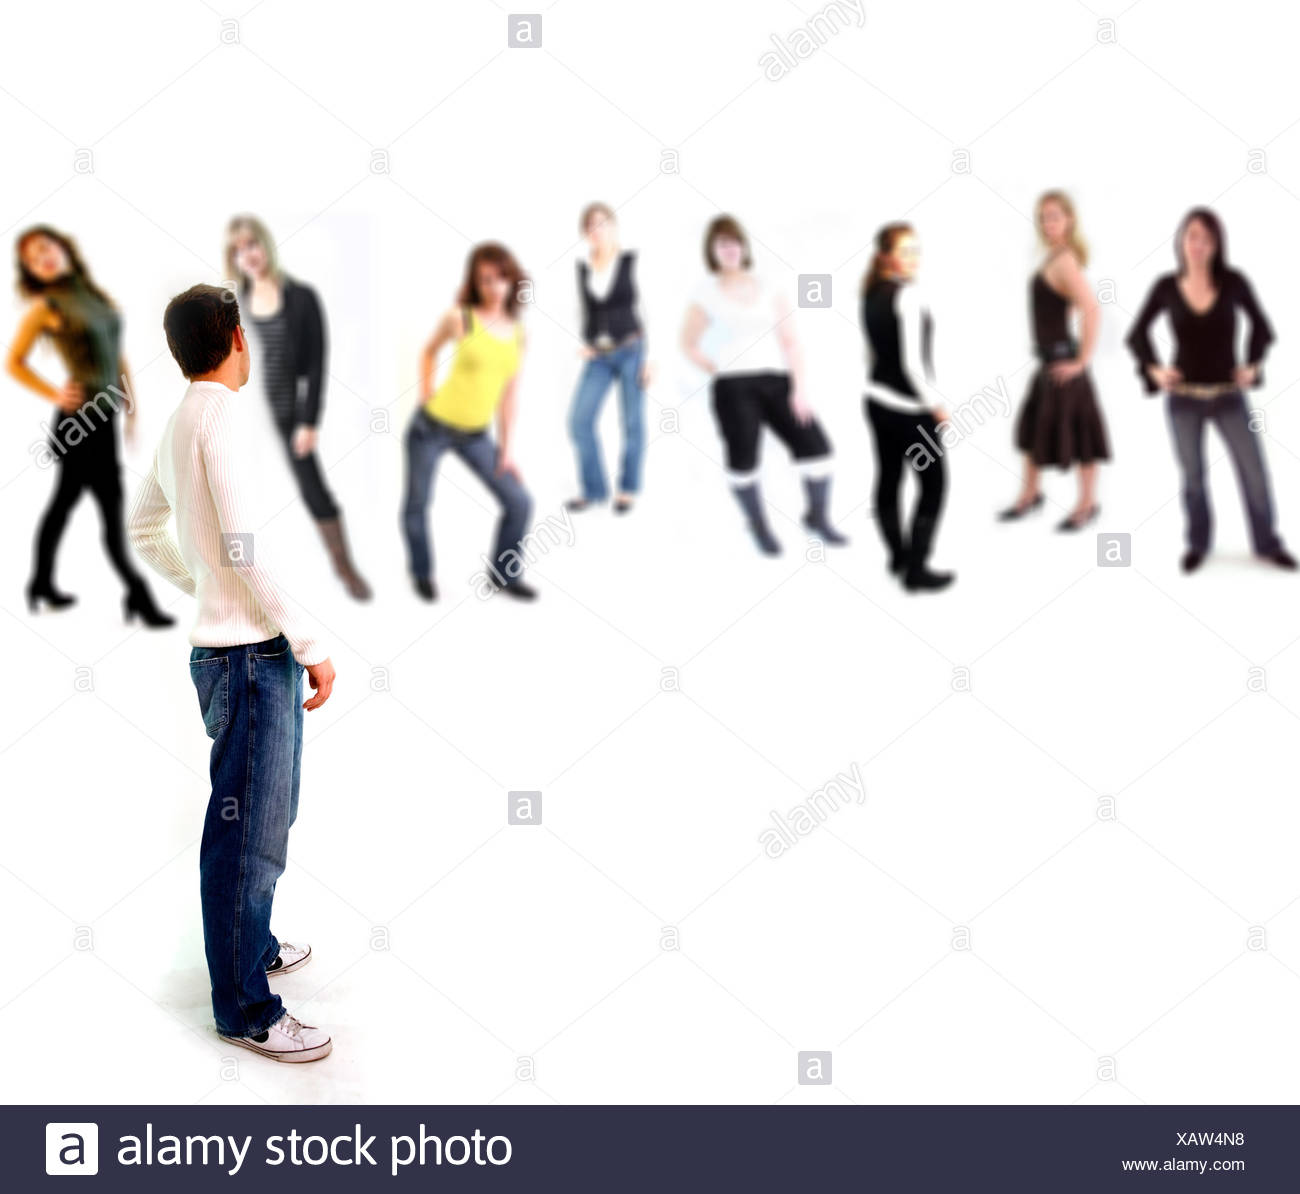 woman women poses competition group photo model model man guy woman women poses - Stock Image